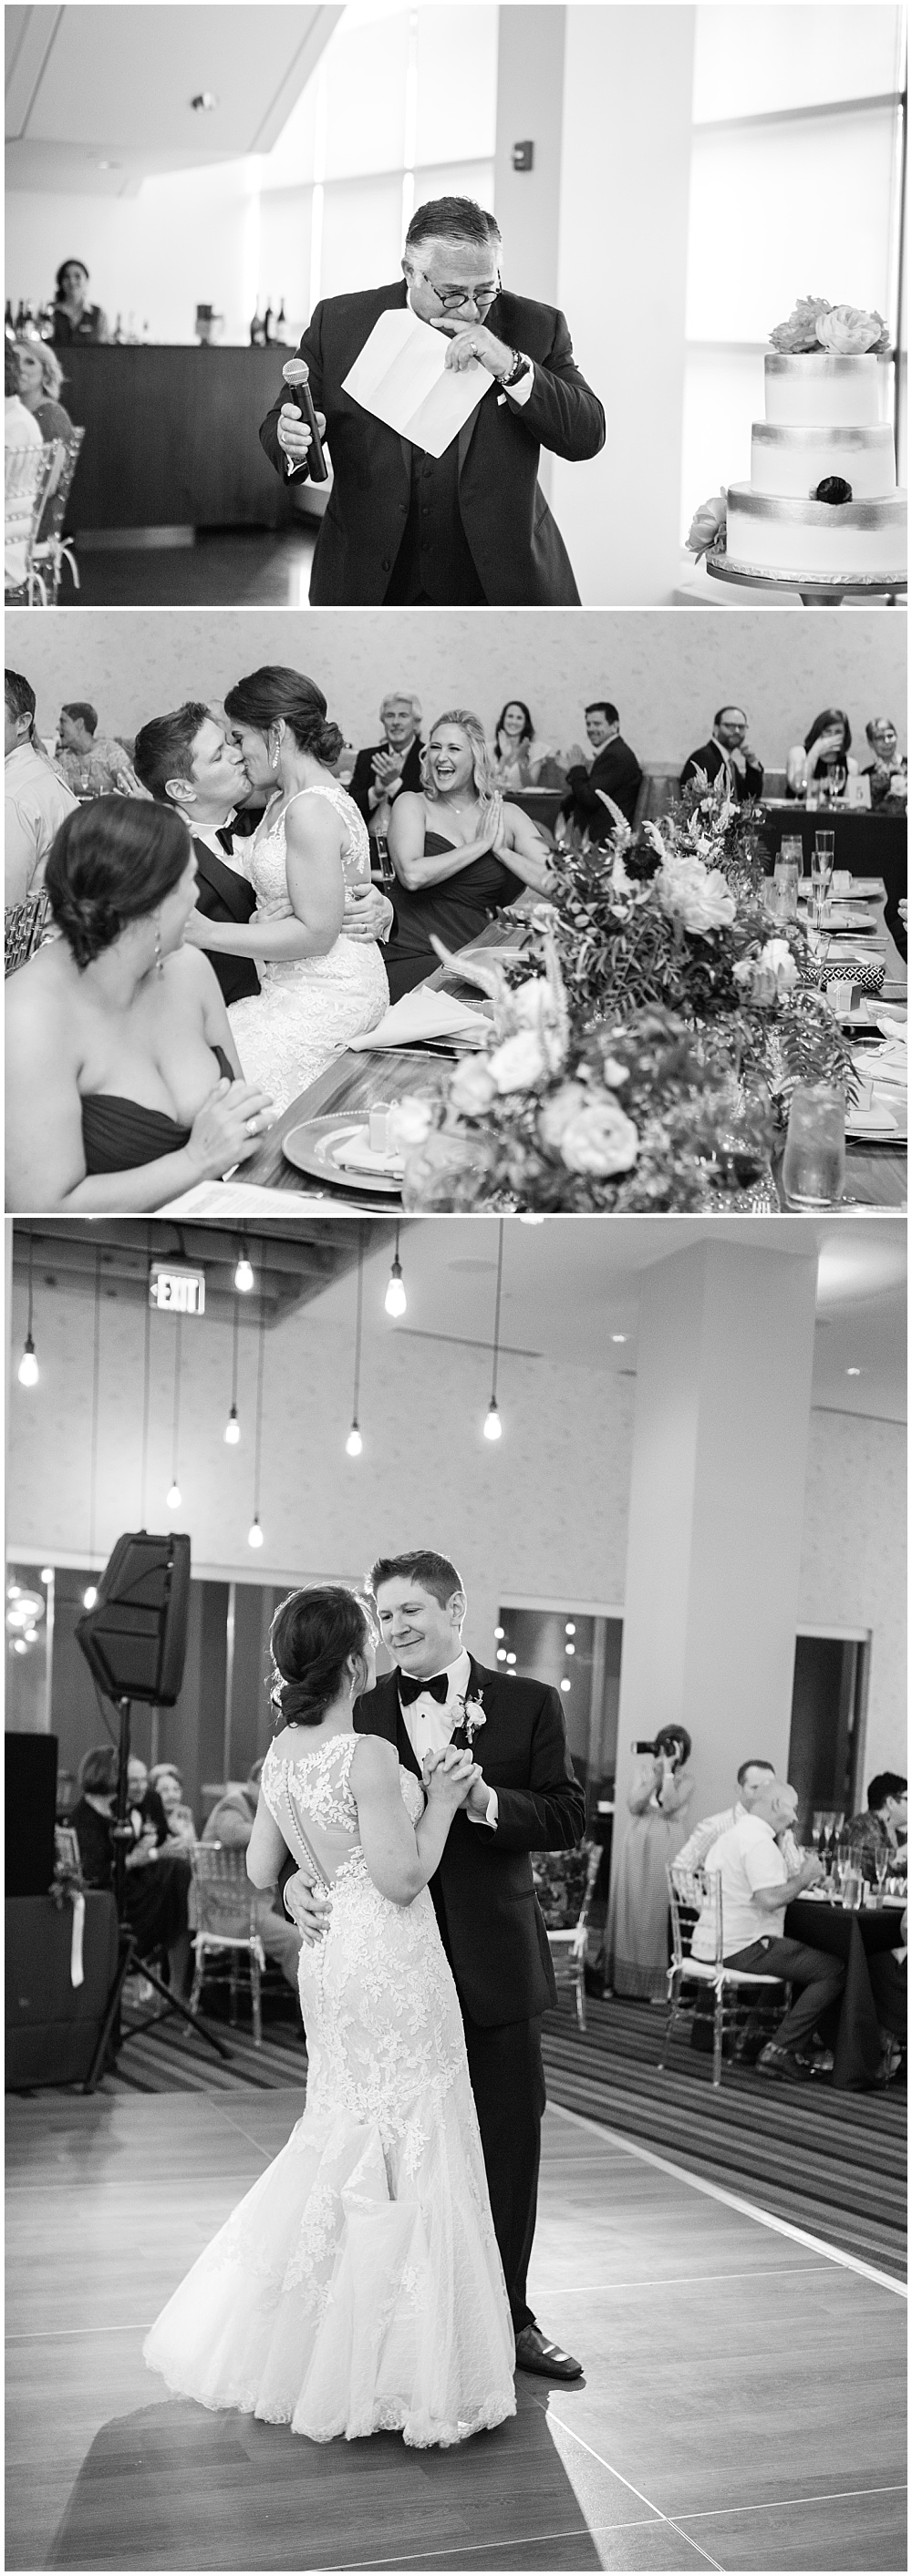 Bride and groom, First dance, Colorful, modern wedding at The Alexander Hotel | Conforti Photography and Jessica Dum Wedding Coordination